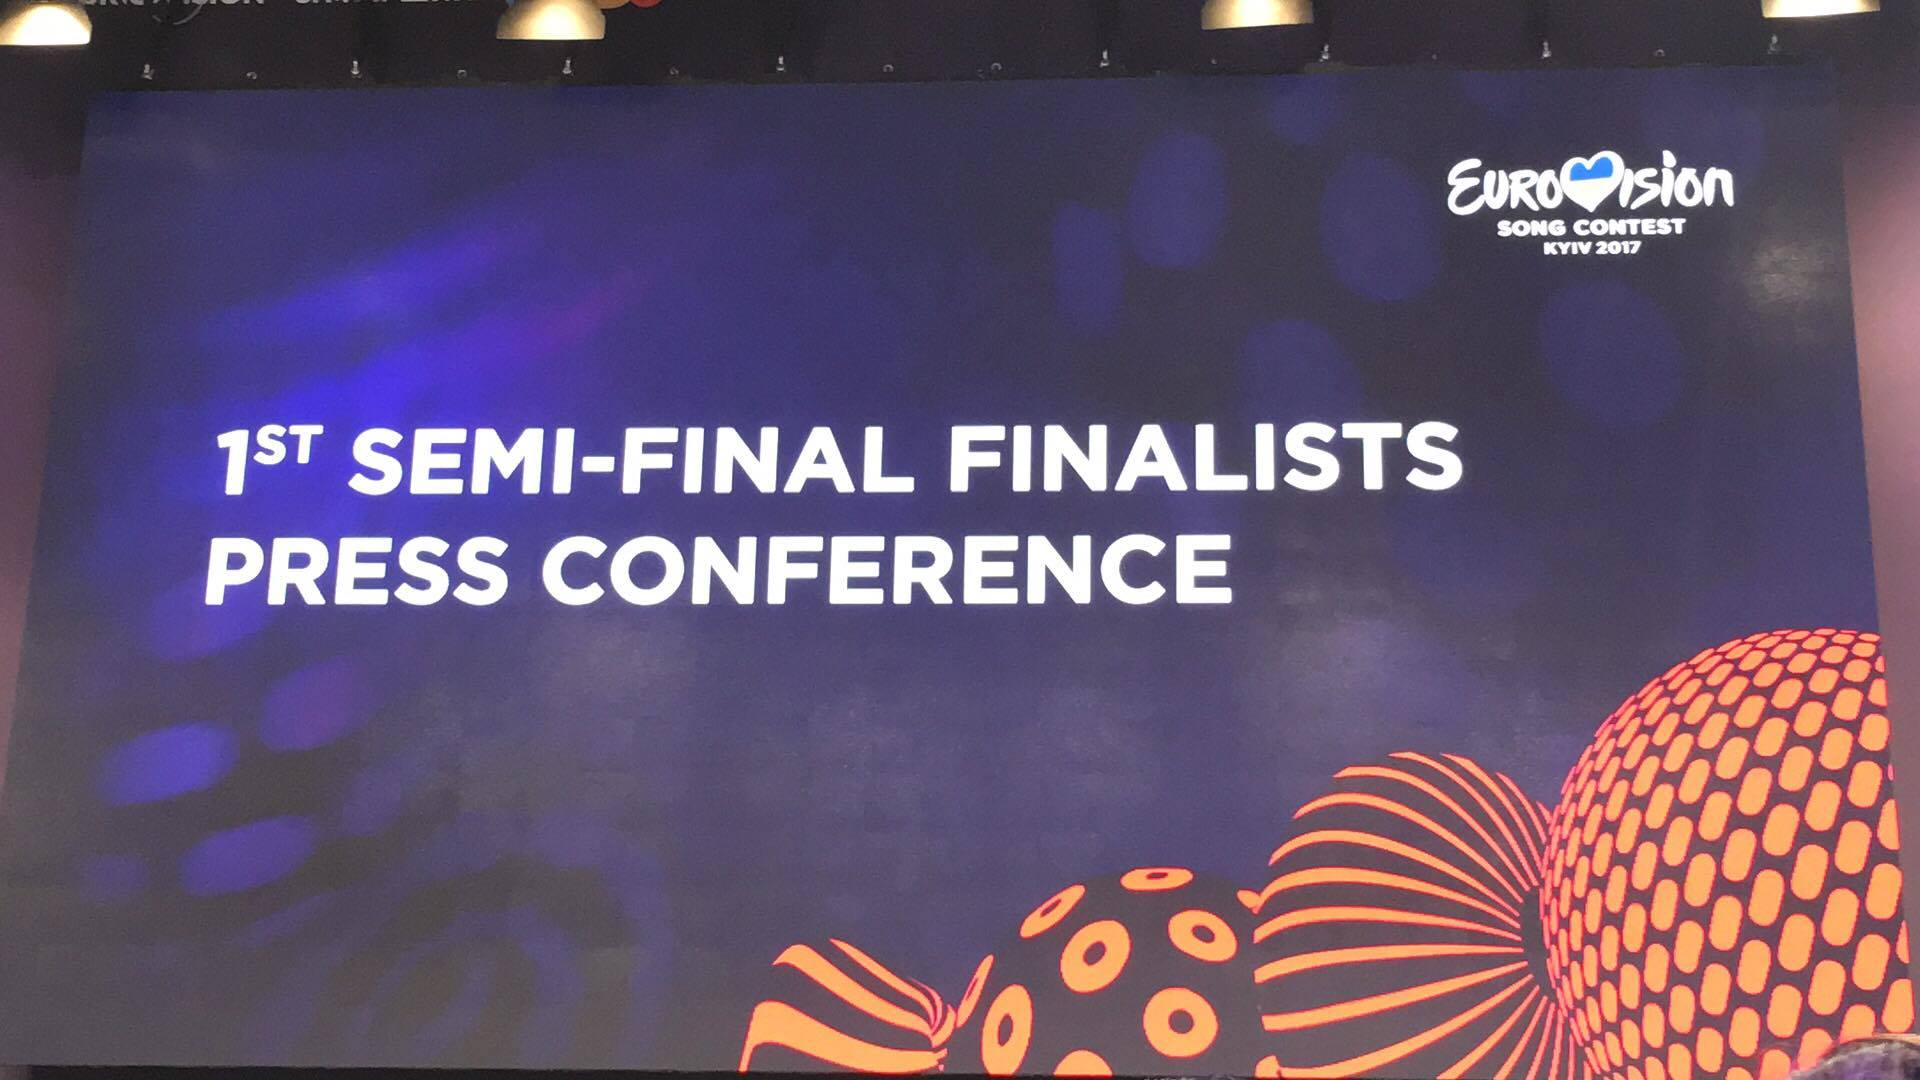 The press conference of the 1st semi final winners